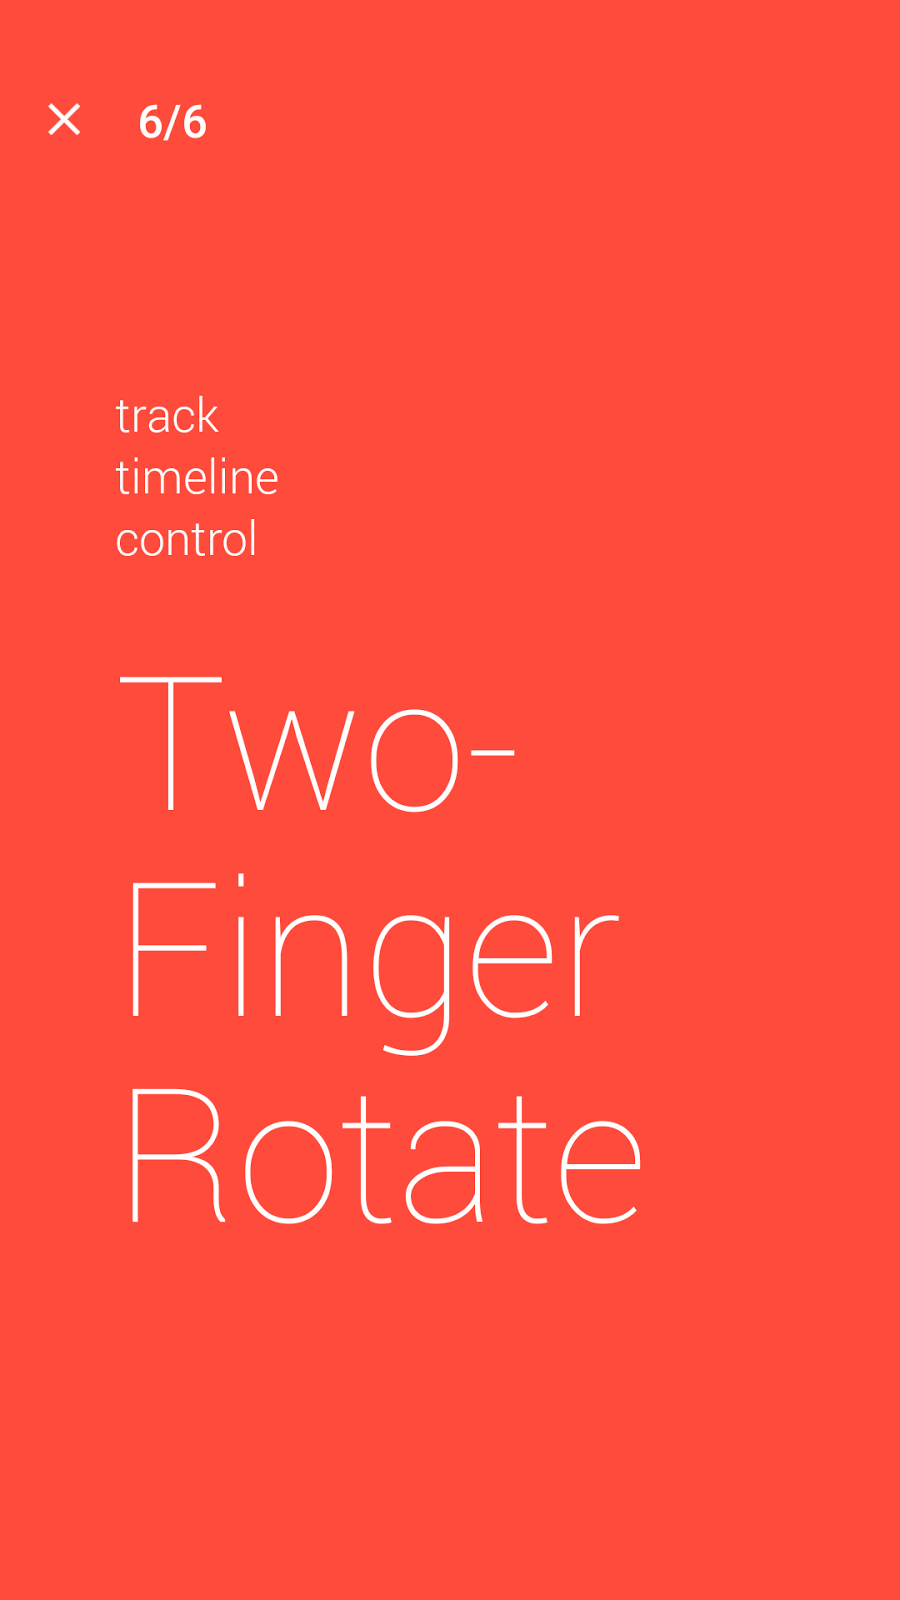 Two finger rotate back and forth to control music player timer